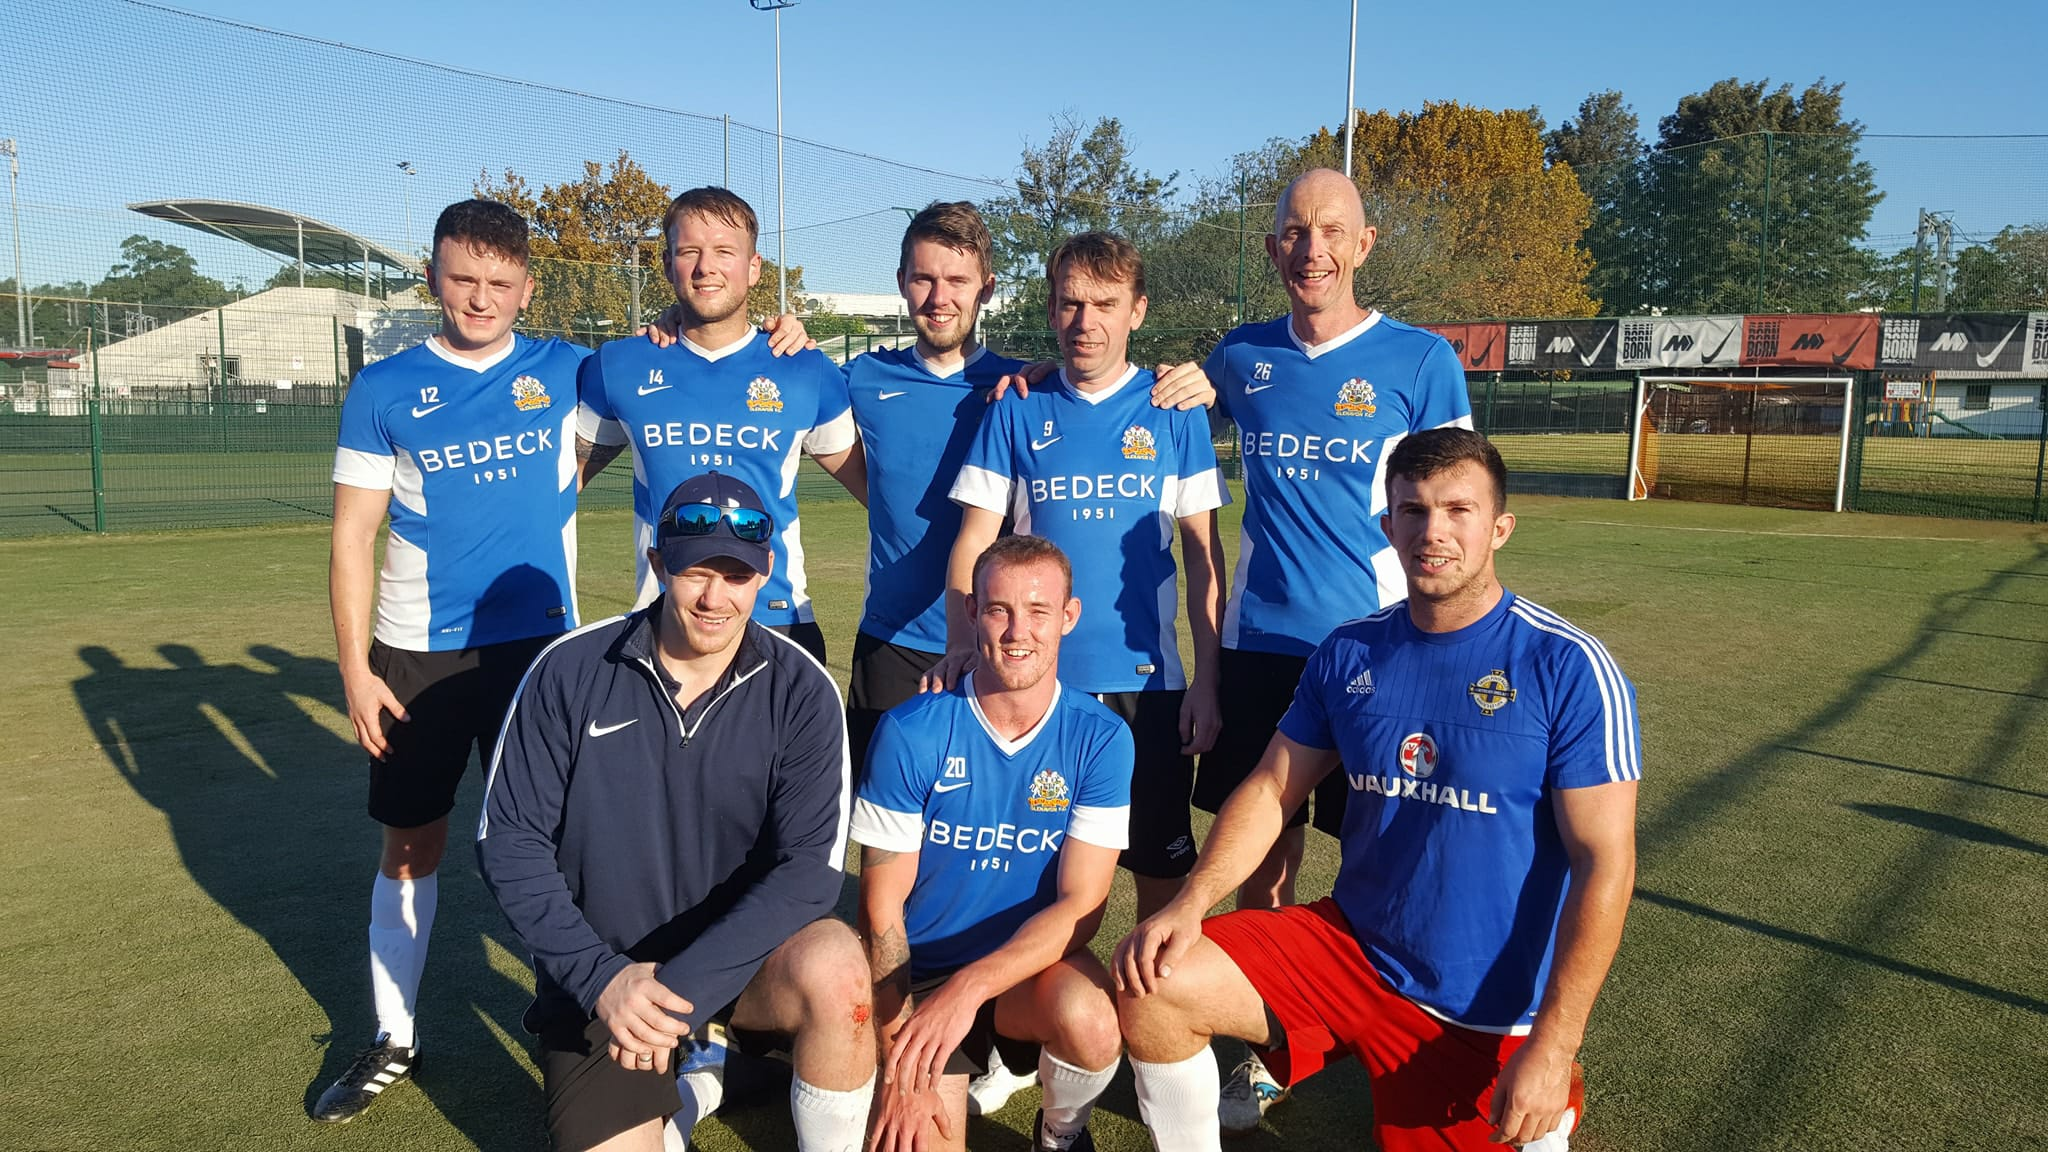 Glenavon FC Represented in Robert Craig Memorial Day, Sydney, Australia